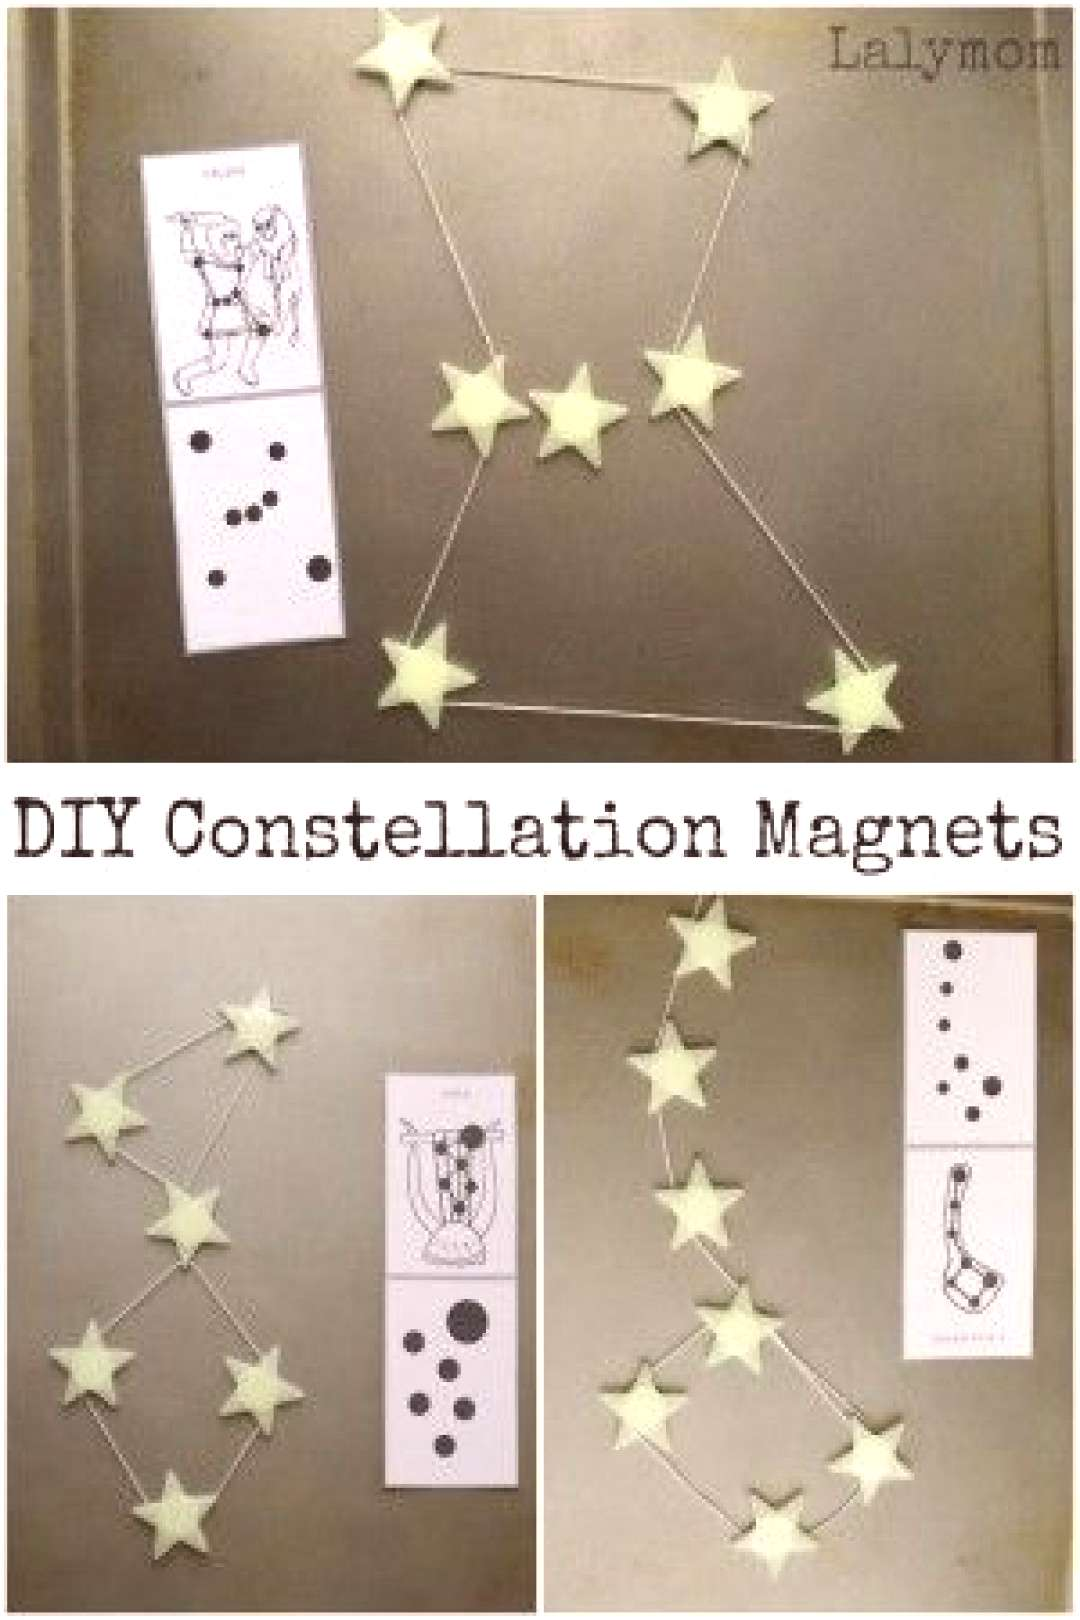 Constellations for Kids - Connecting DIY Star Magnets Add a fun spin to learning constellations wit